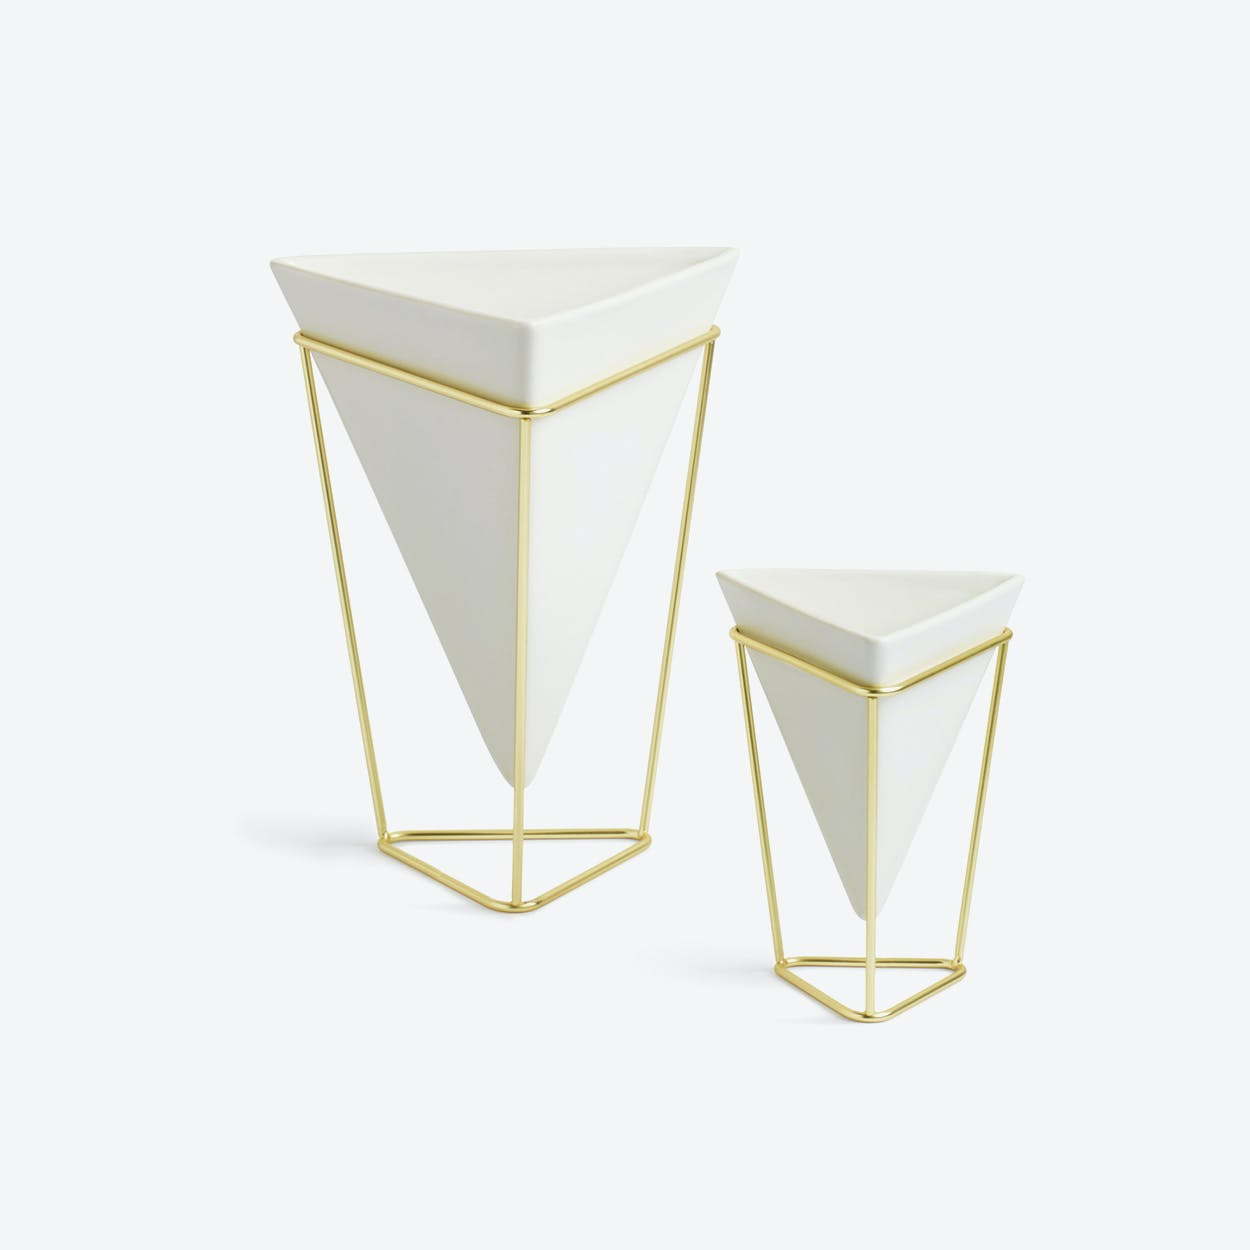 Trigg Tabletop in White & Brass (Set of 2)